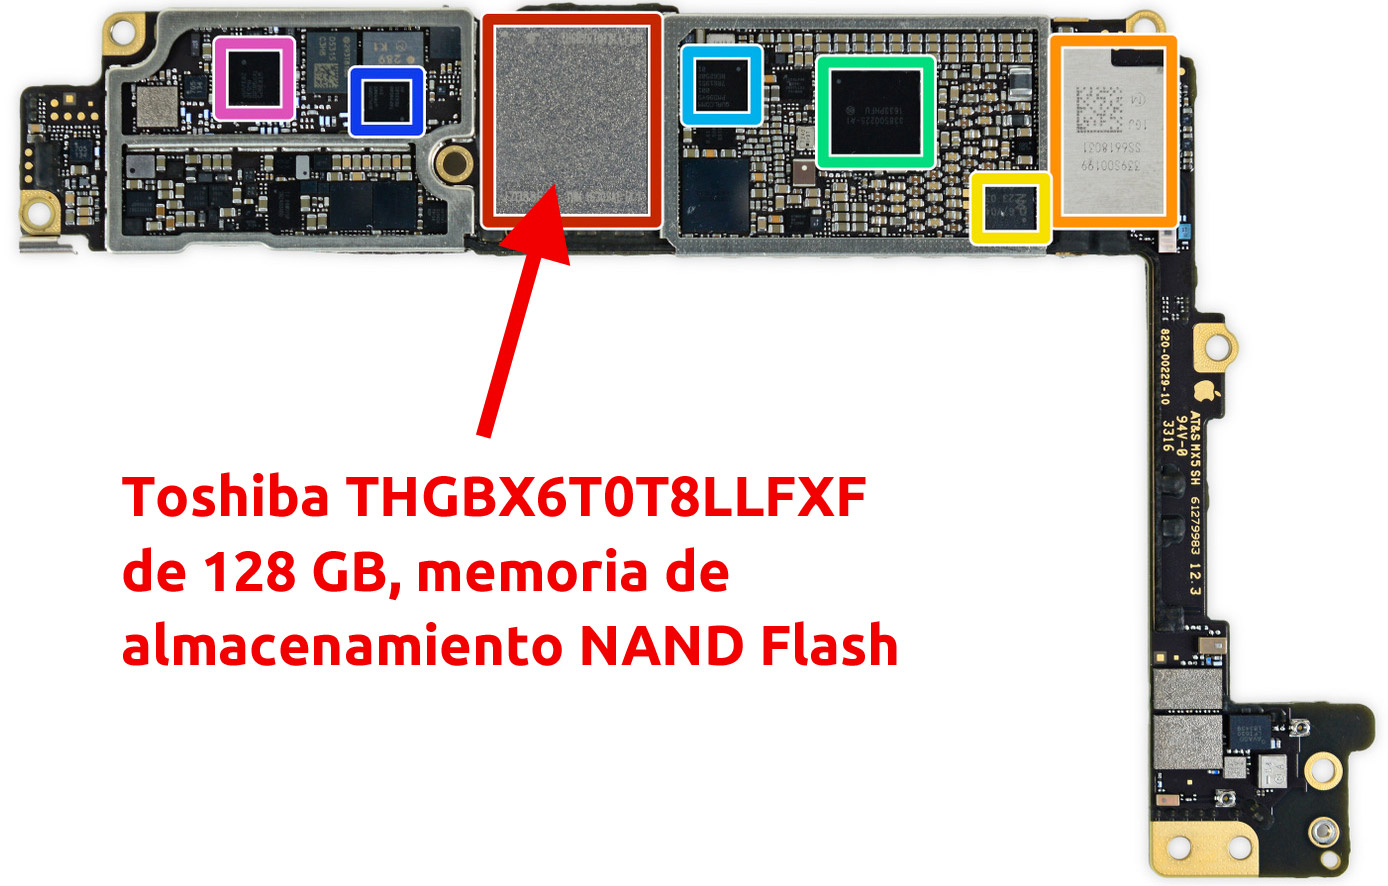 Chip de memoria NAND Flash de Toshiba en la placa base de un iPhone 7